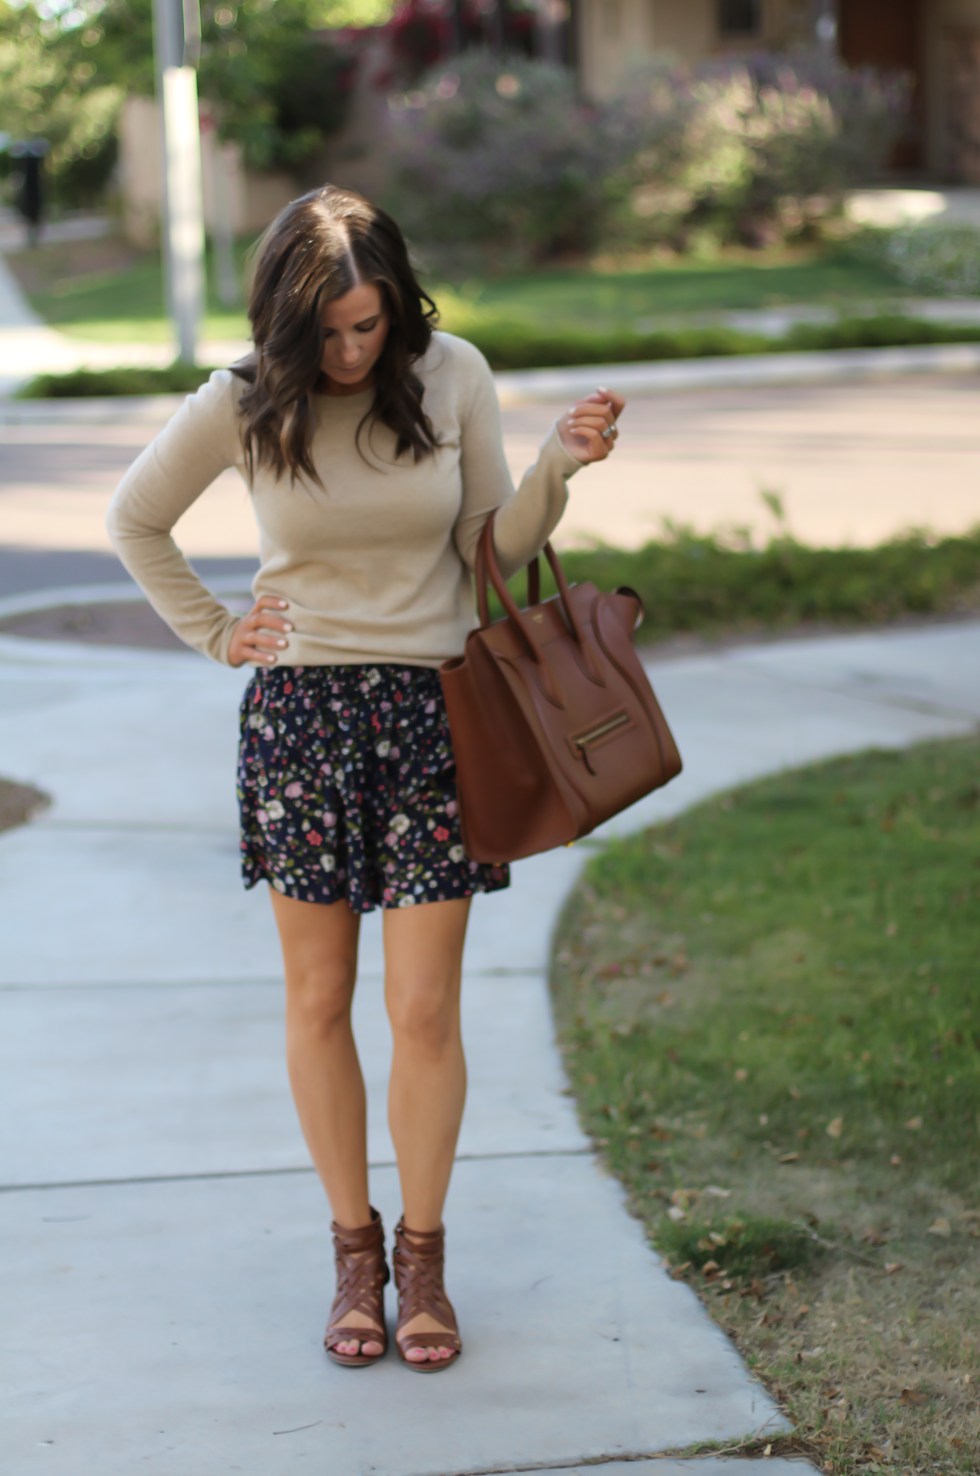 Navy Floral Shorts, Tan Cashmere Sweater, Brown Gladiator Sandals, Brown Leather Tote, Rebecca Taylor, J.Crew, Candies, Celine